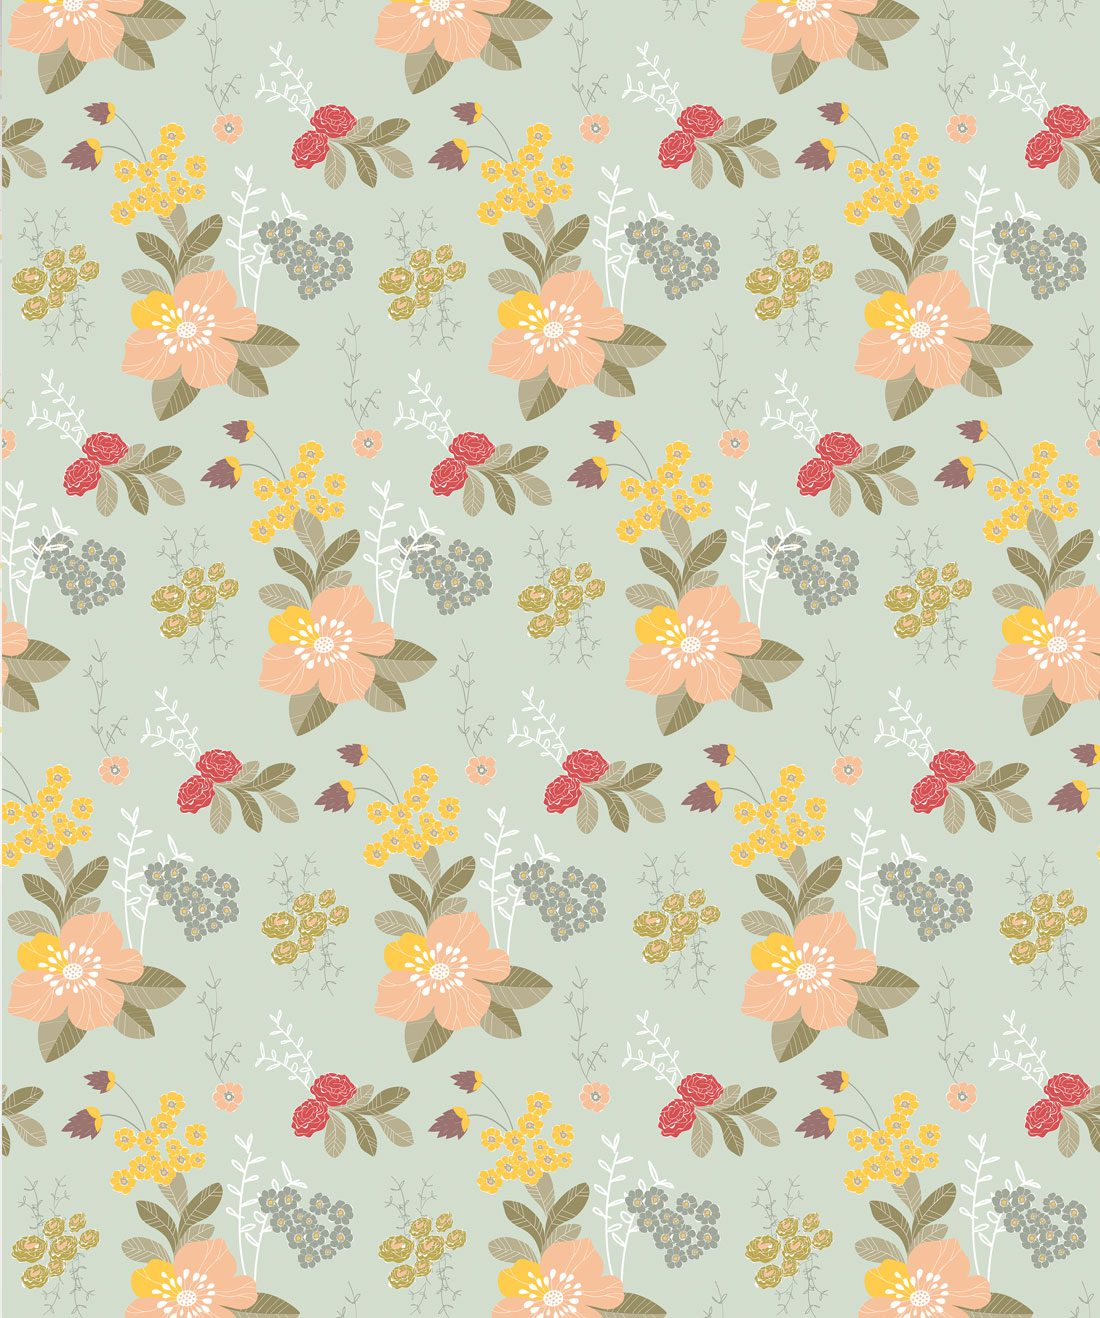 Flower Garden Vintage Inspired Floral Wallpaper Milton King